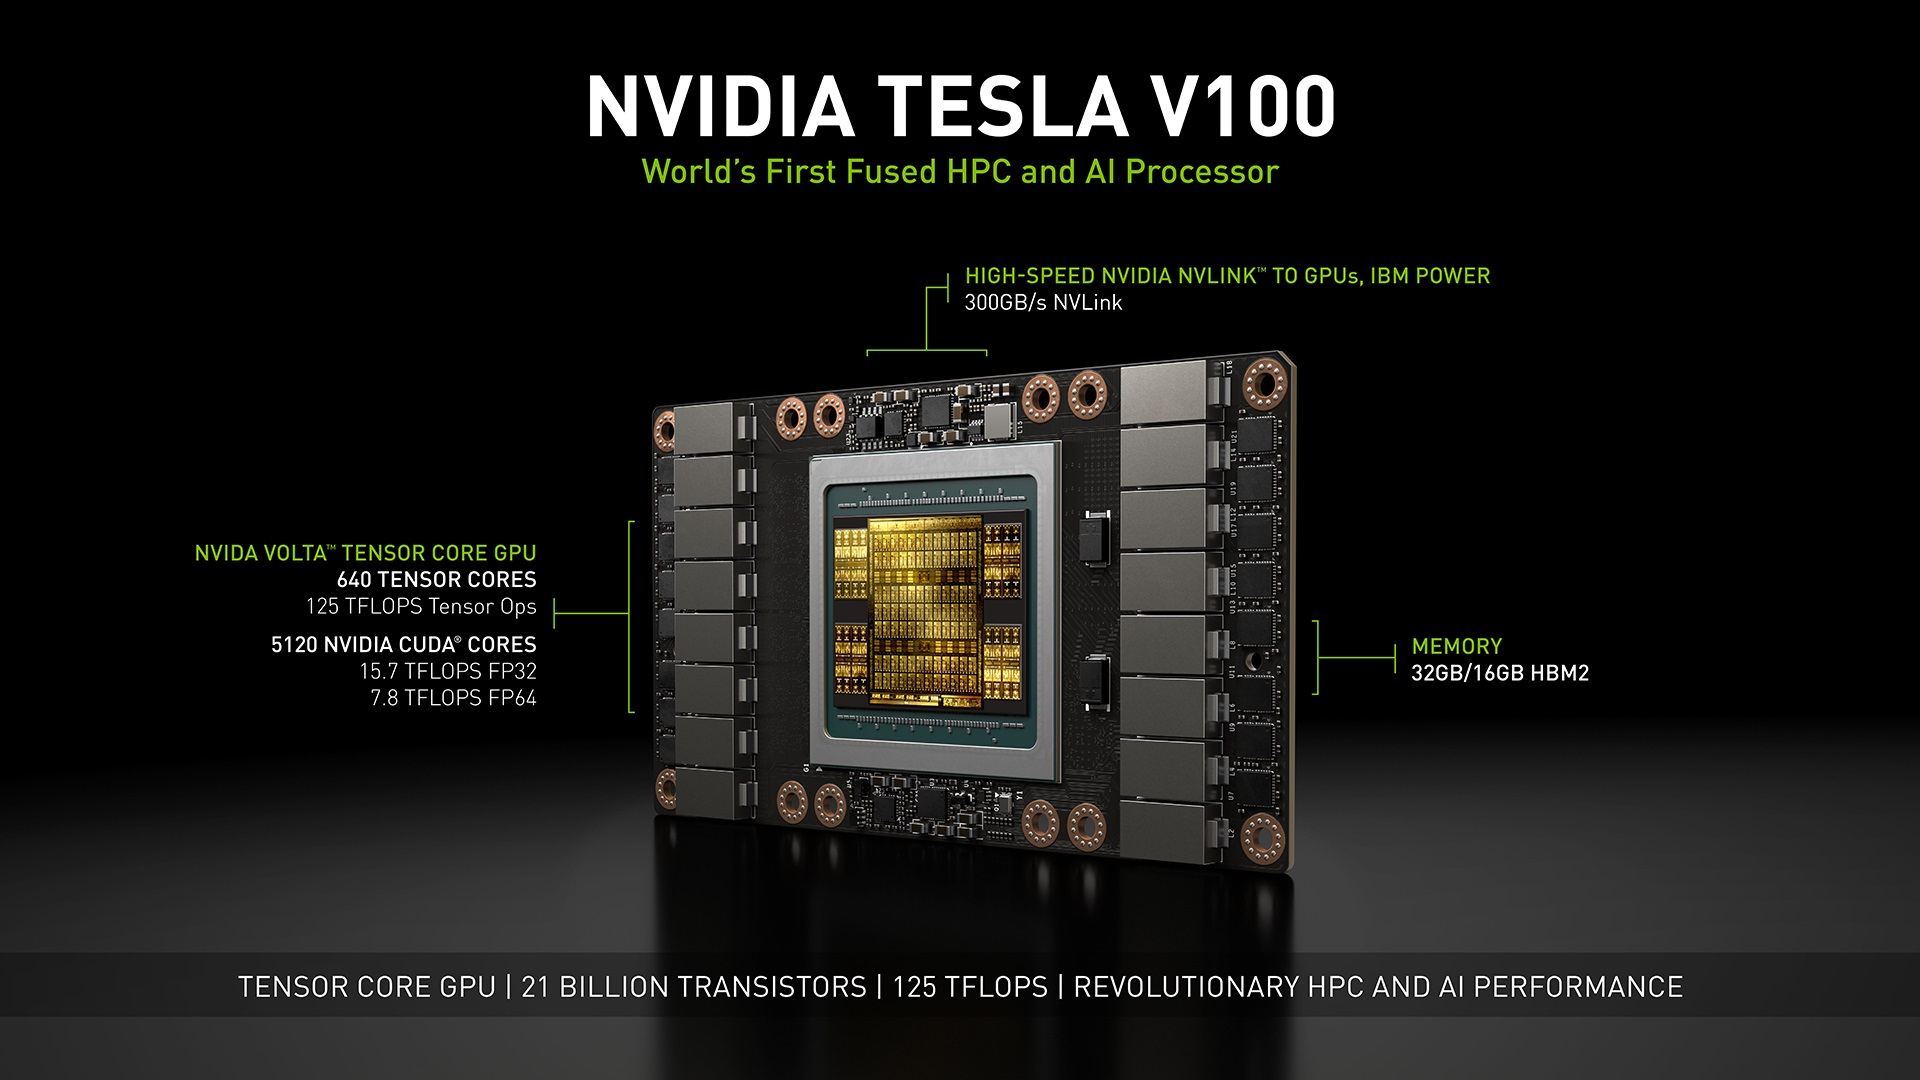 NVIDIA 7nm Next-Gen-GPUs To Be Built By TSMC